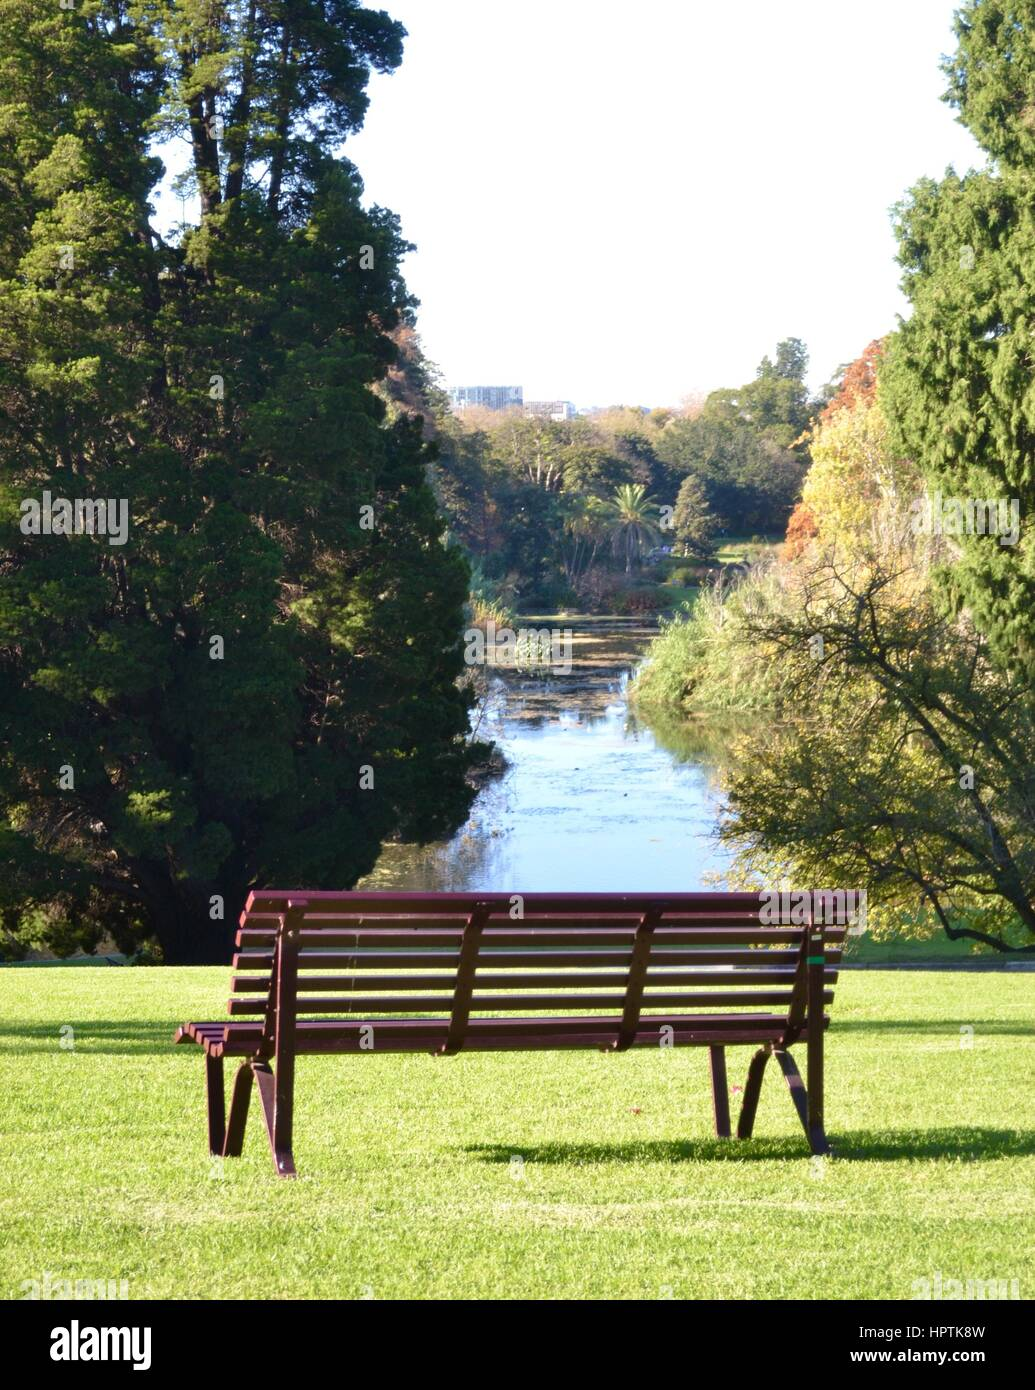 Empty park bench on a grassy hill in the park - Stock Image